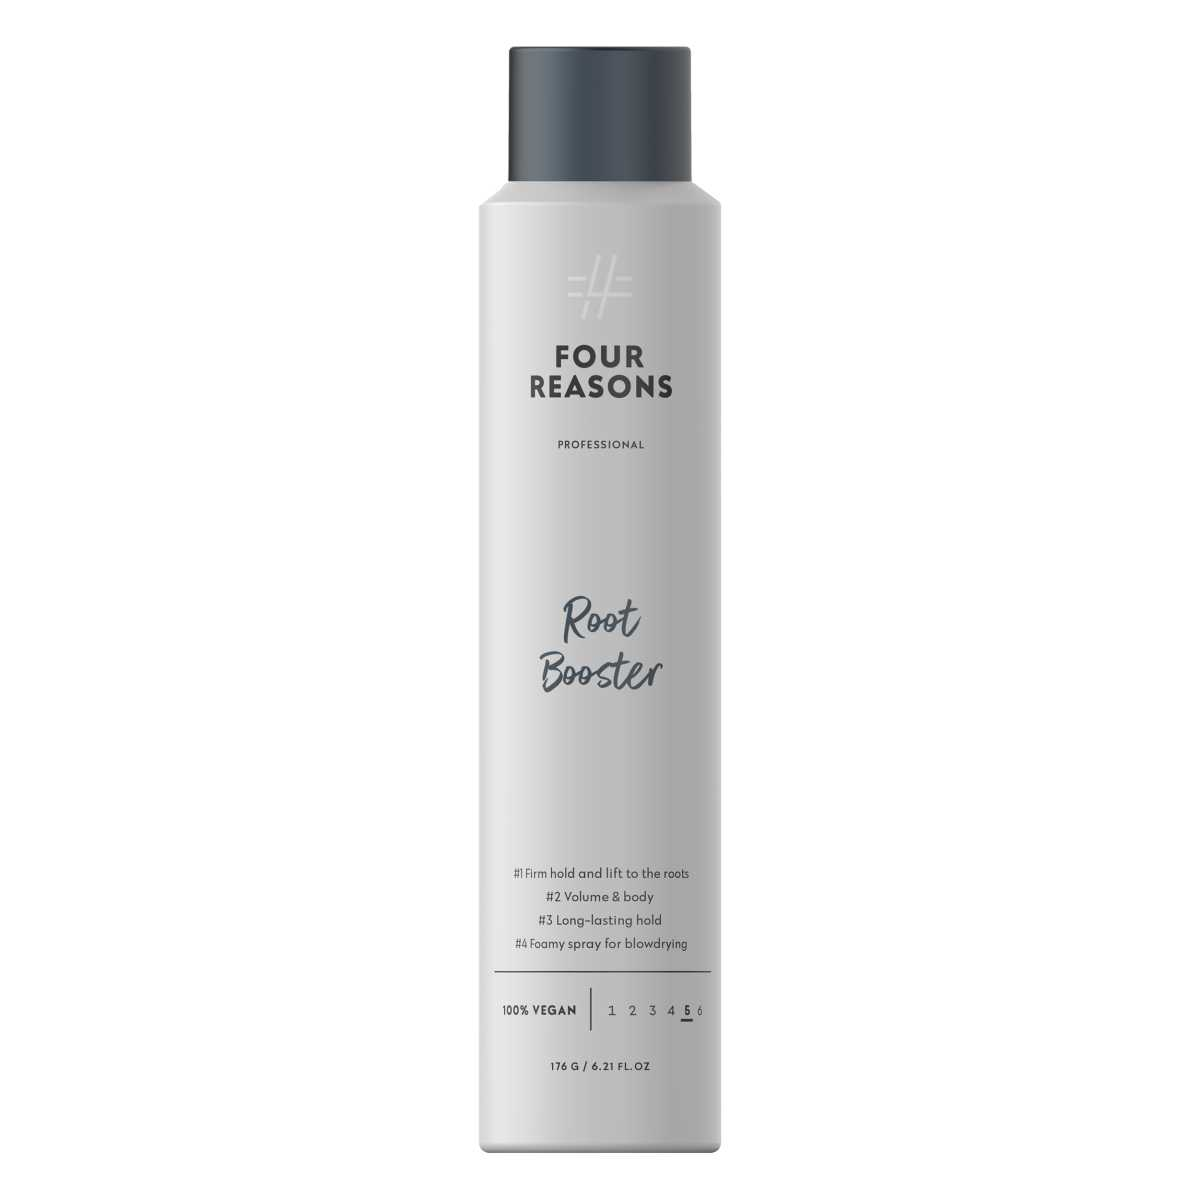 ... Four-Reasons-Professional-Root-Booster ab9eff494a